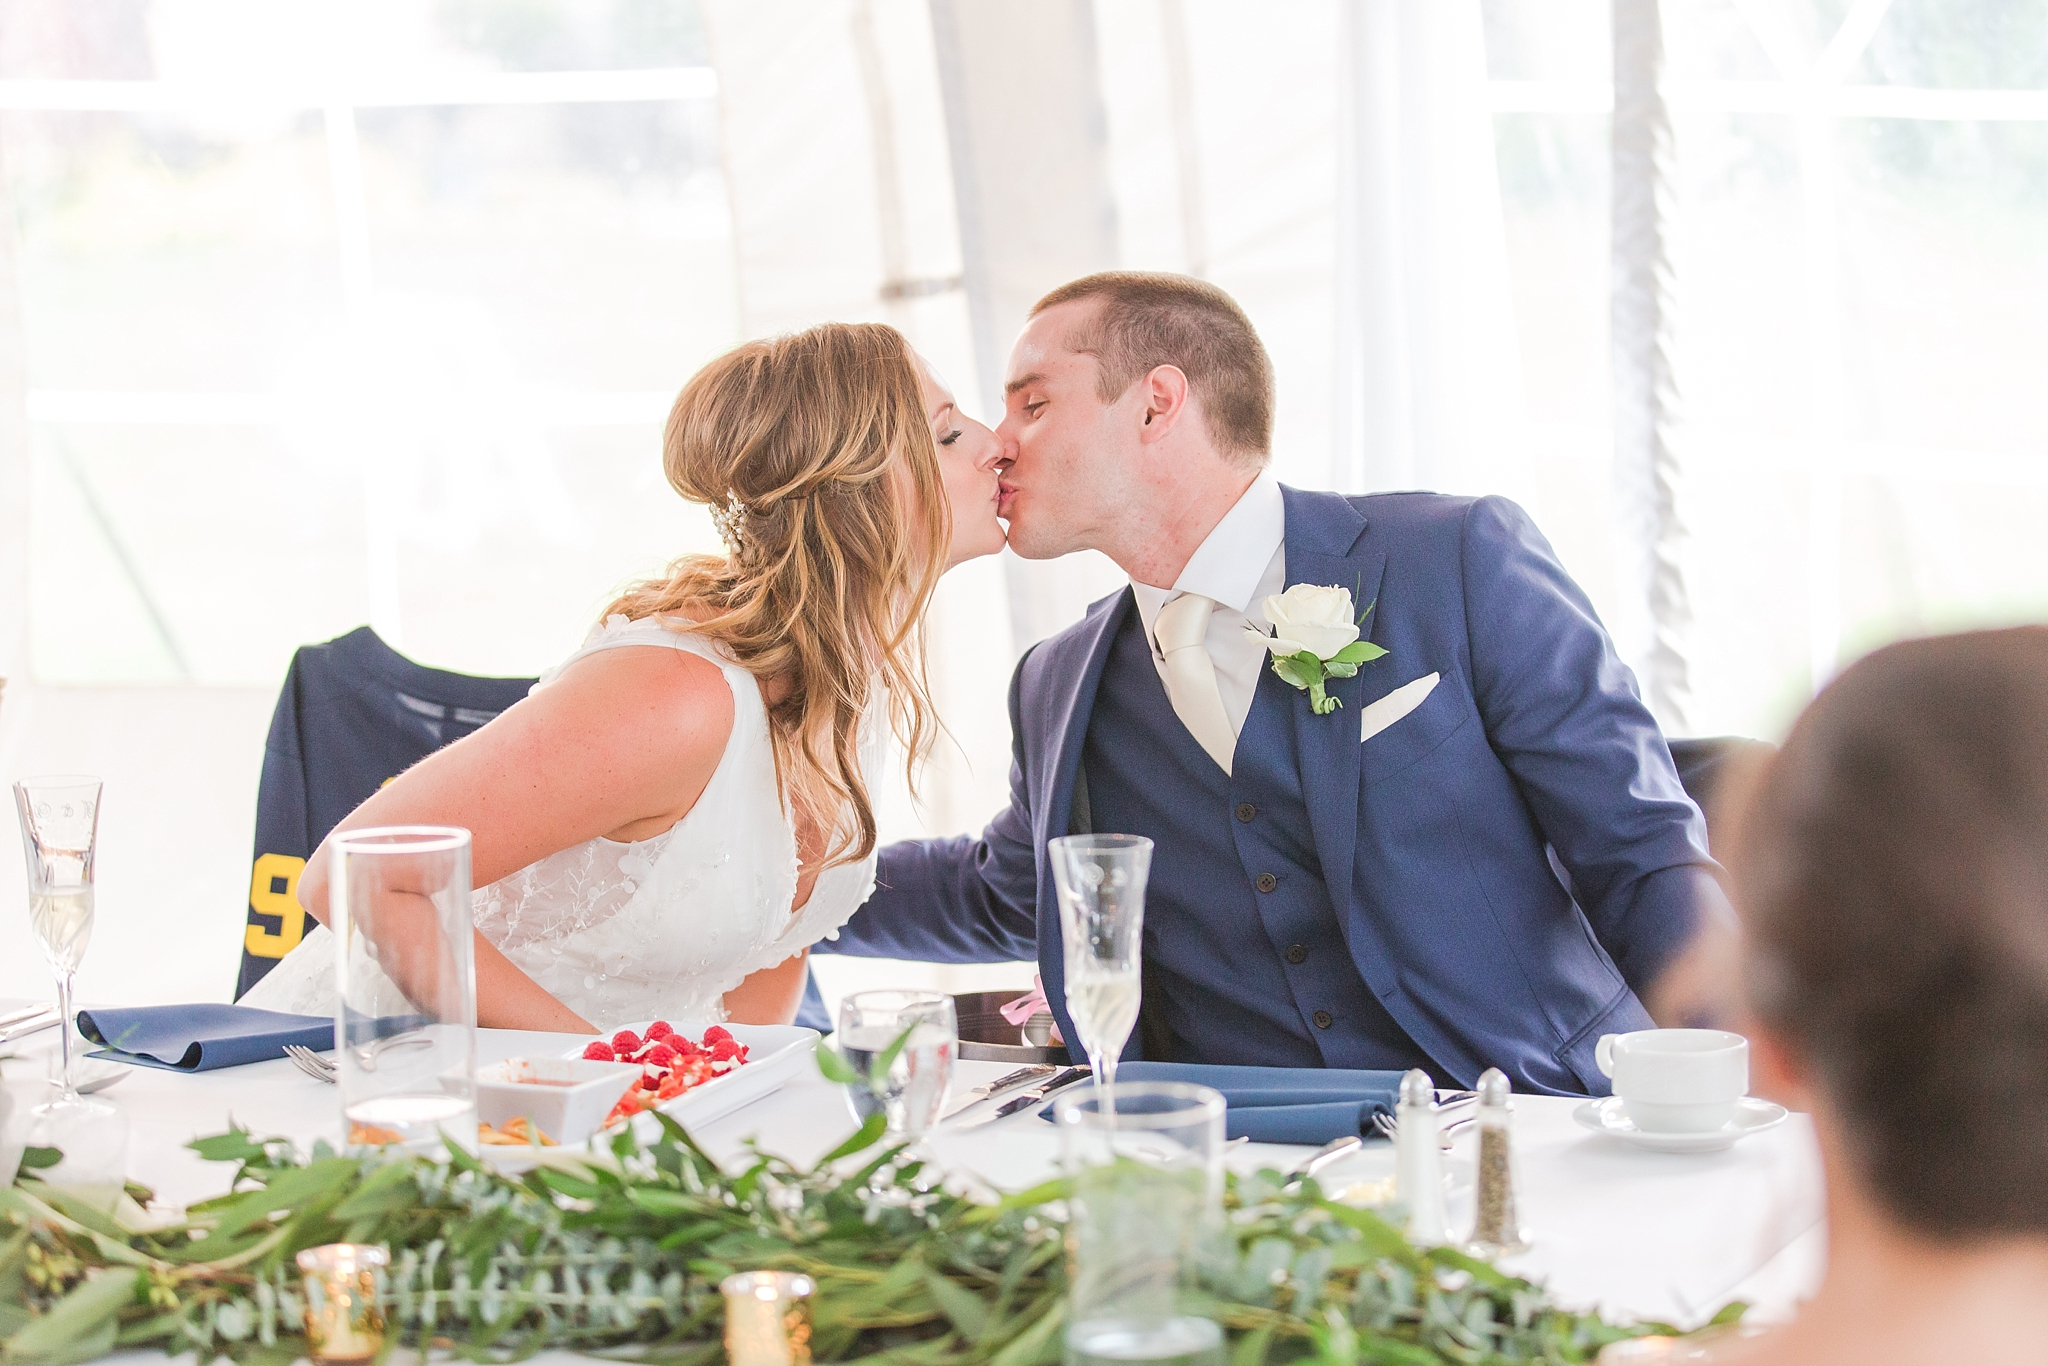 joyful-candid-laid-back-wedding-photos-in-ann-arbor-michigan-and-at-the-eagle-crest-golf-resort-by-courtney-carolyn-photography_0100.jpg